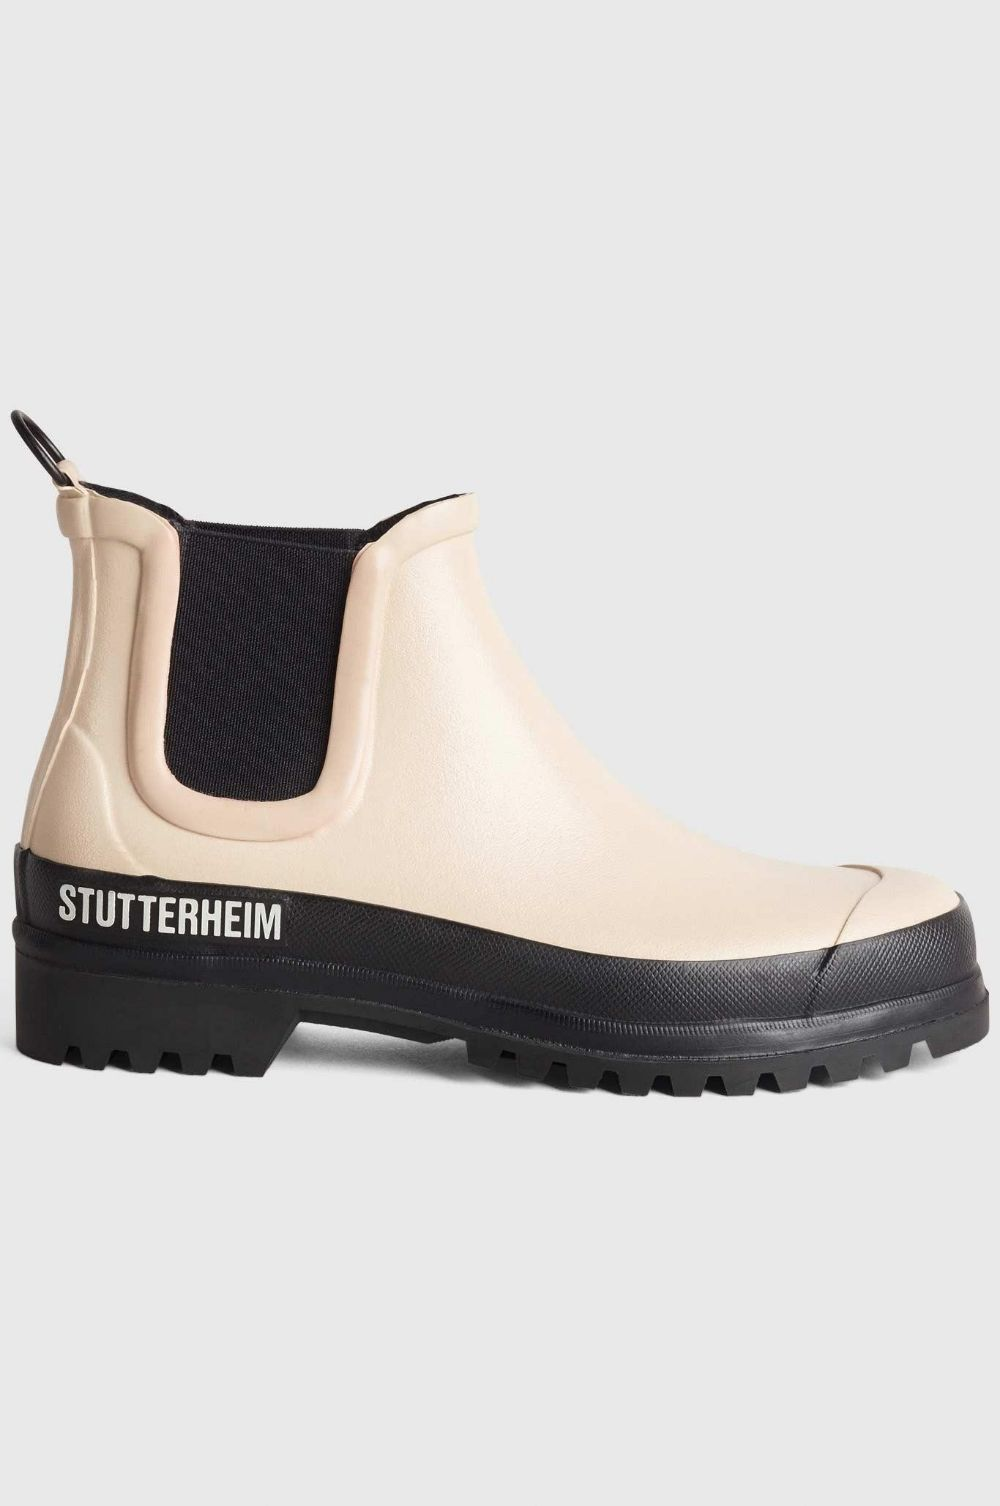 The Stutterheim Rainwalker is a unisex shoe, based on the timeless silhouette of a Chelsea boot. By adding a contrasting sole, here in black, the Stutterheim design team have updated this classic style, achieving a contemporary, eye-catching aesthetic.